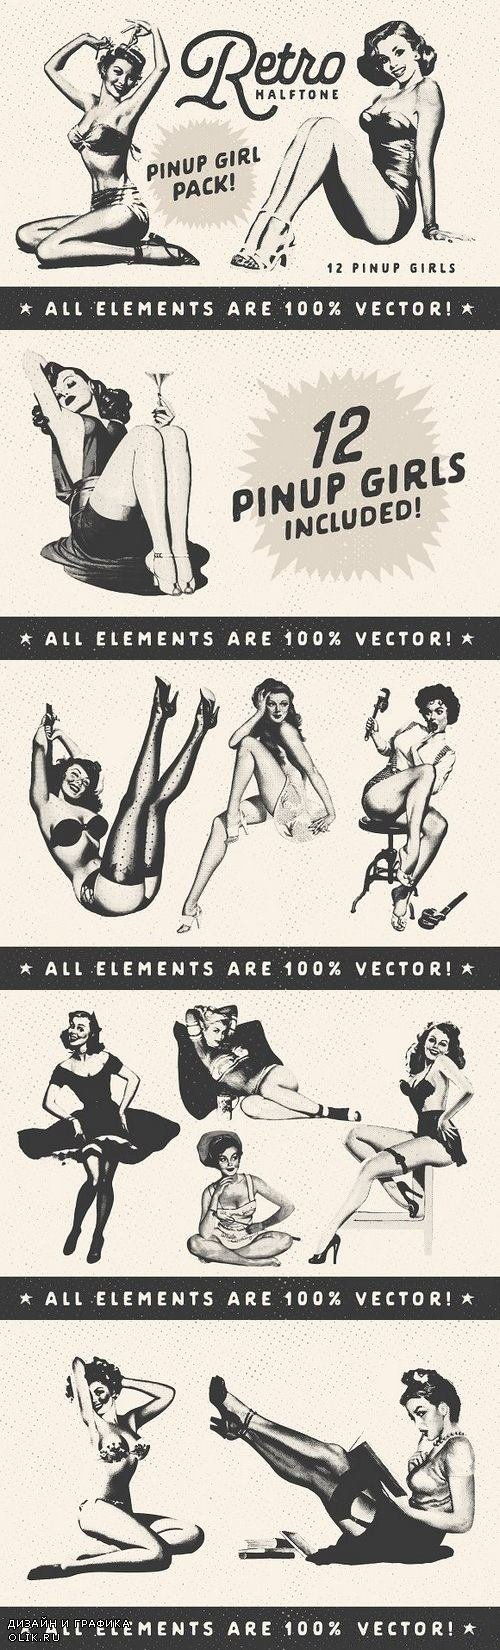 Retro Halftone Pinup Girl Pack 1209192